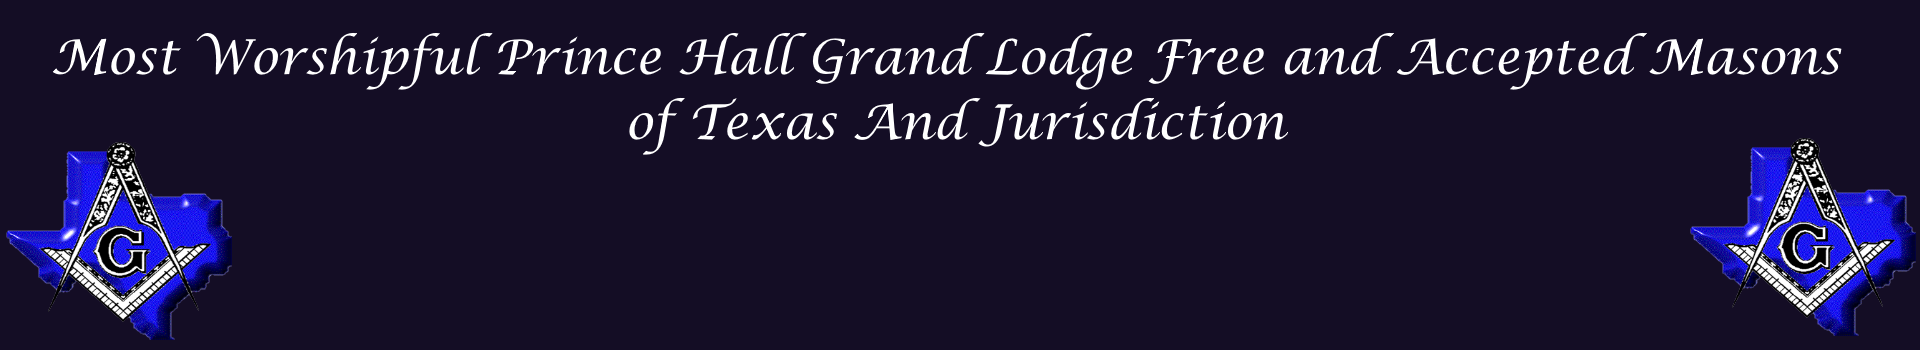 The Most Worshipful Prince Hall Grand Lodge of Texas